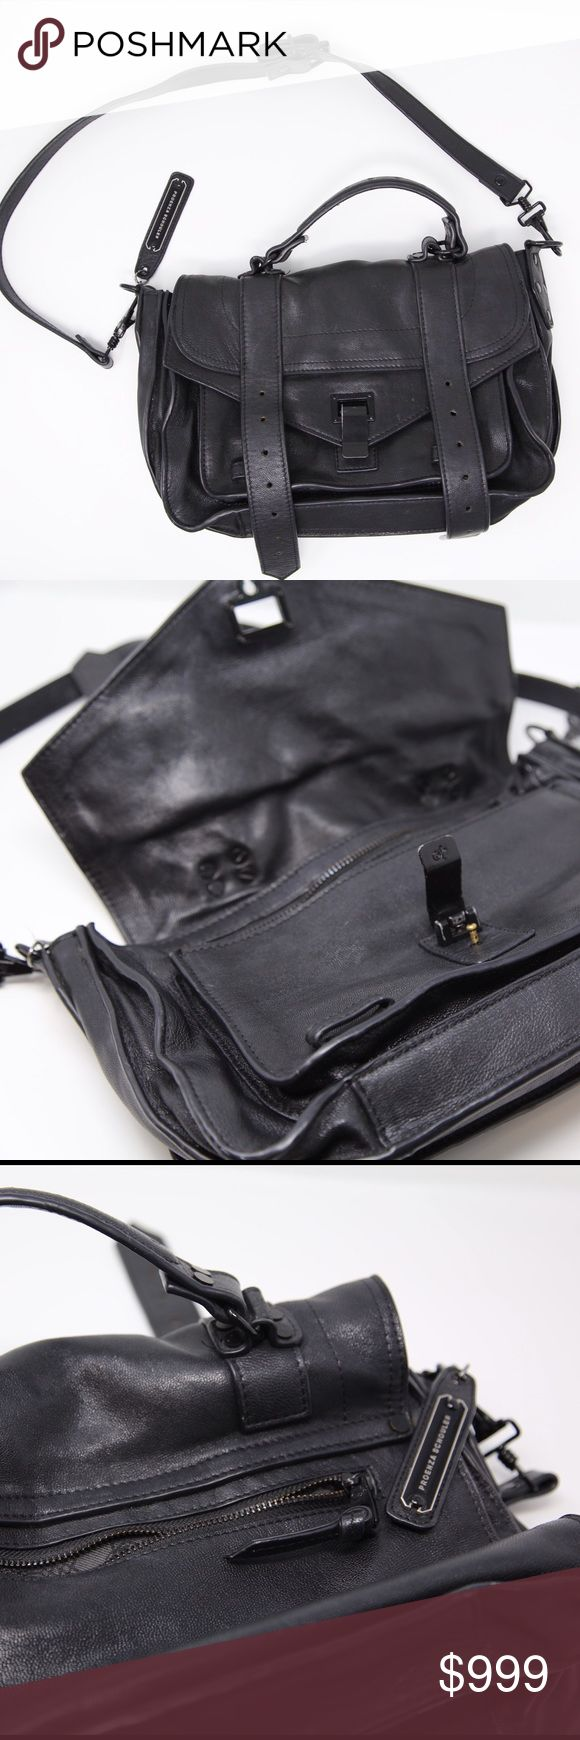 Proenza ps1 bag black hardware Very used black leather with black hardware Proenza ps1 bag. This bag is used. For sale on my depop for $250 username: thebeststuff Proenza Schouler Bags Crossbody Bags